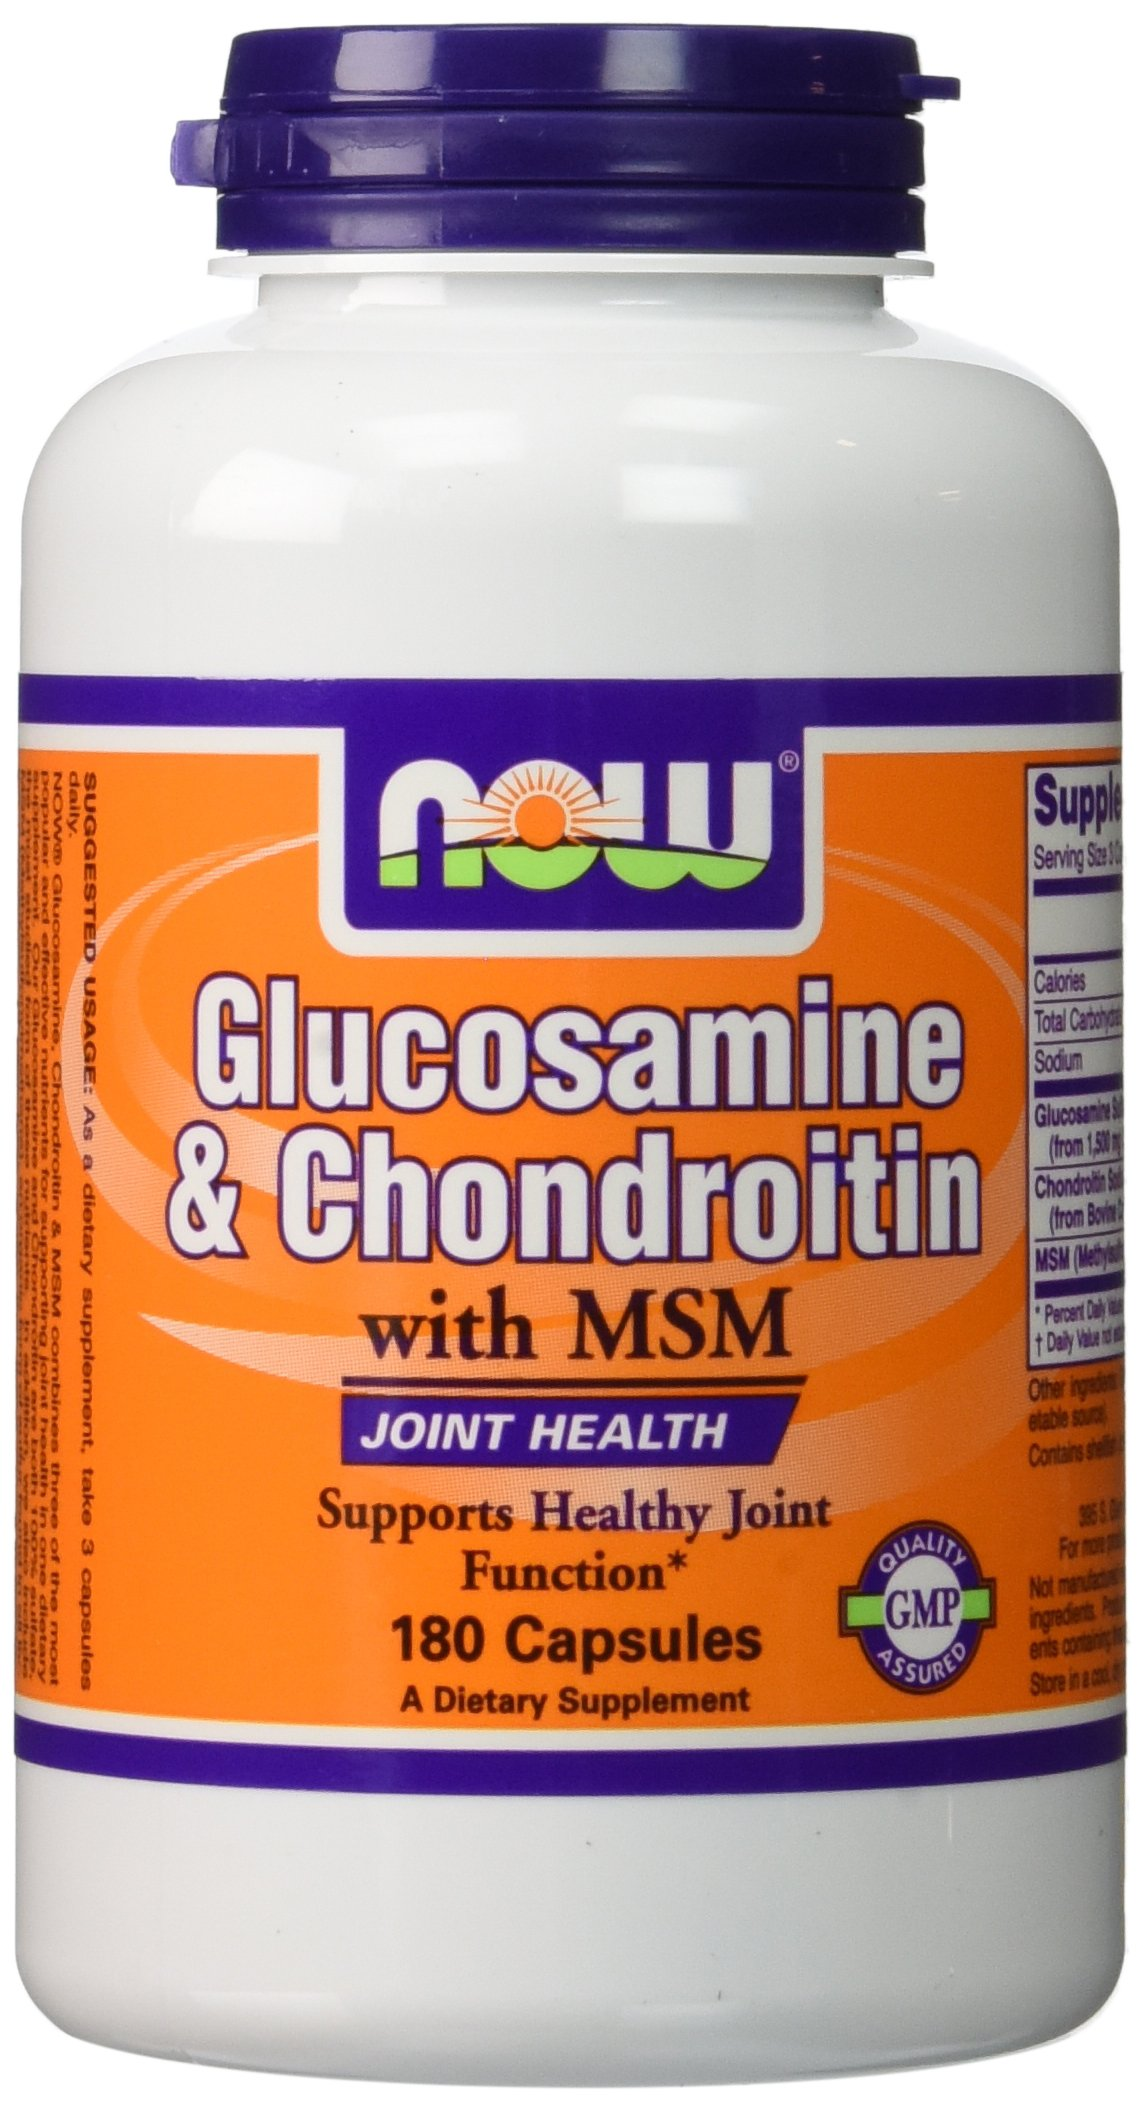 NOW Foods Glucosamine 1.1g, Chondroitin 1.2g, with MSM 300mg, 180 Capsules (Pack of 2)